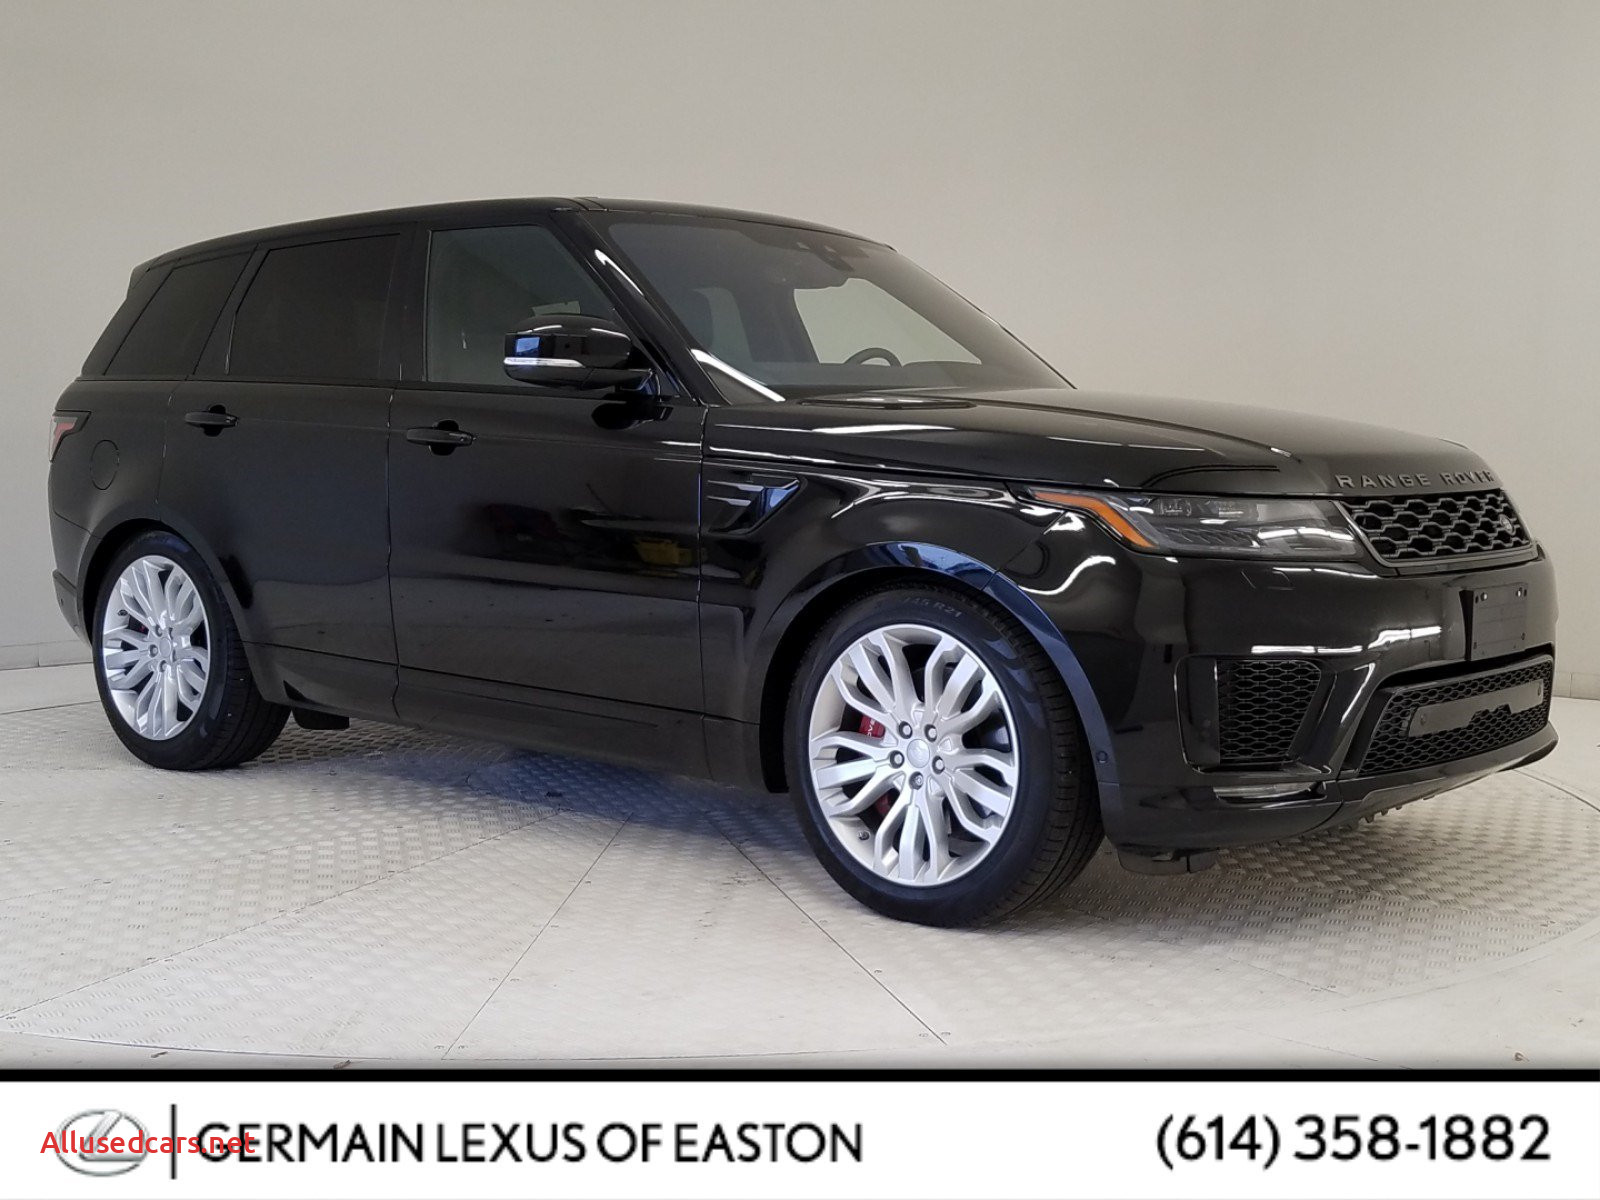 Range Rover for Sale Near Me Elegant Pre Owned 2019 Land Rover Range Rover Sport Dynamic with Navigation & 4wd